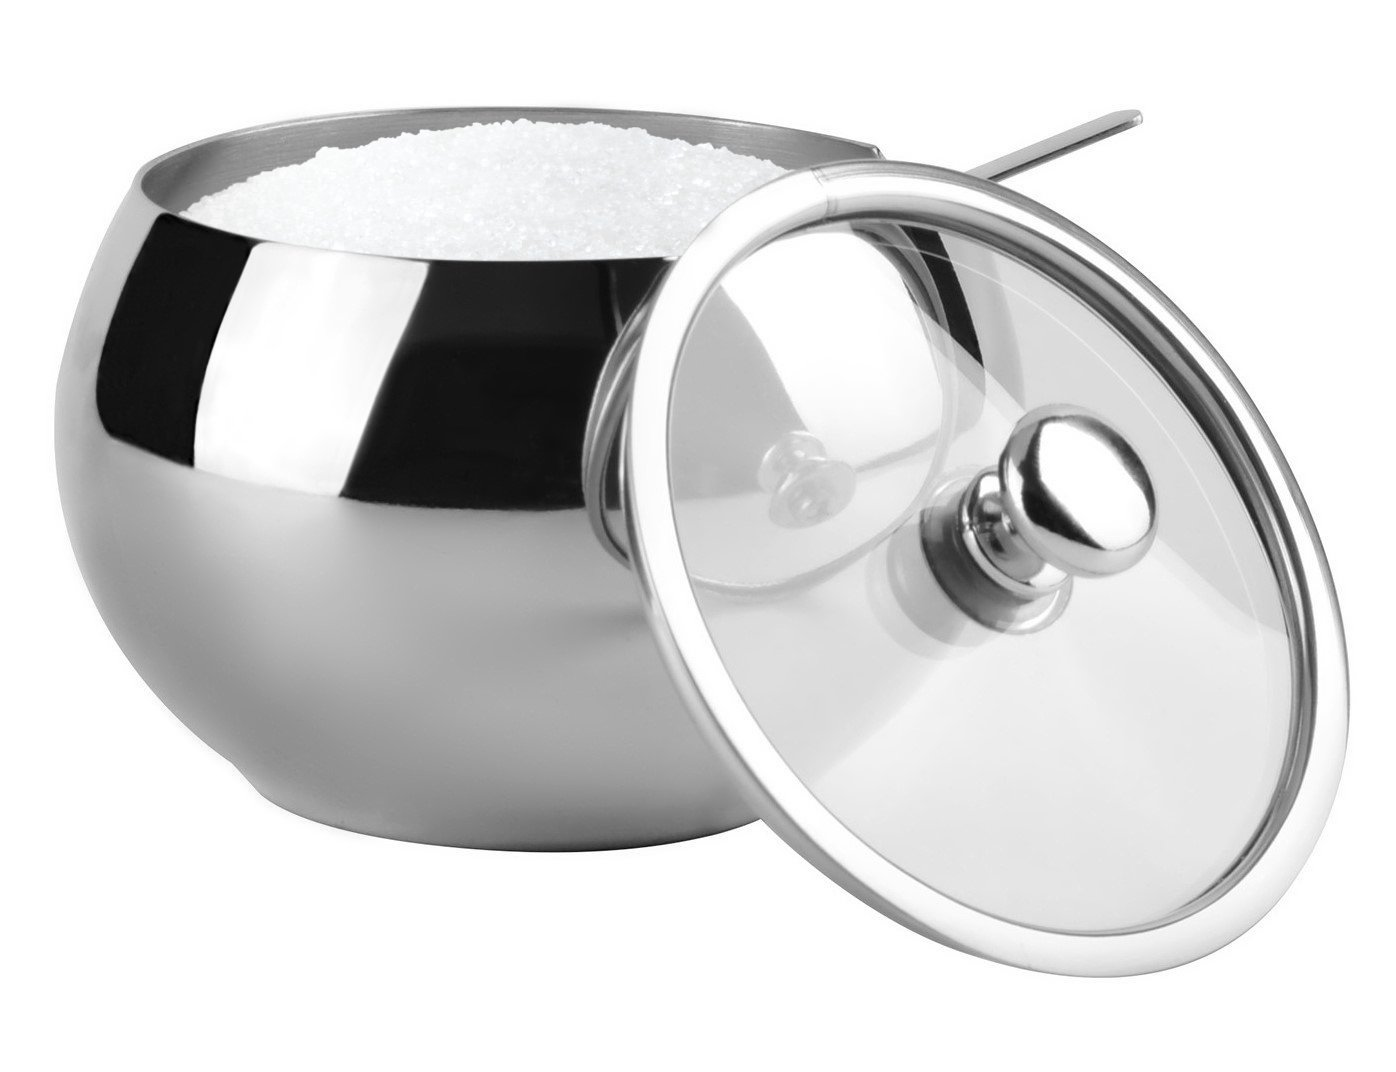 KooK Sugar Bowl Glass With Clear Lid and Spoon 0.5L (16.90 Ounces) - Wide Mouth